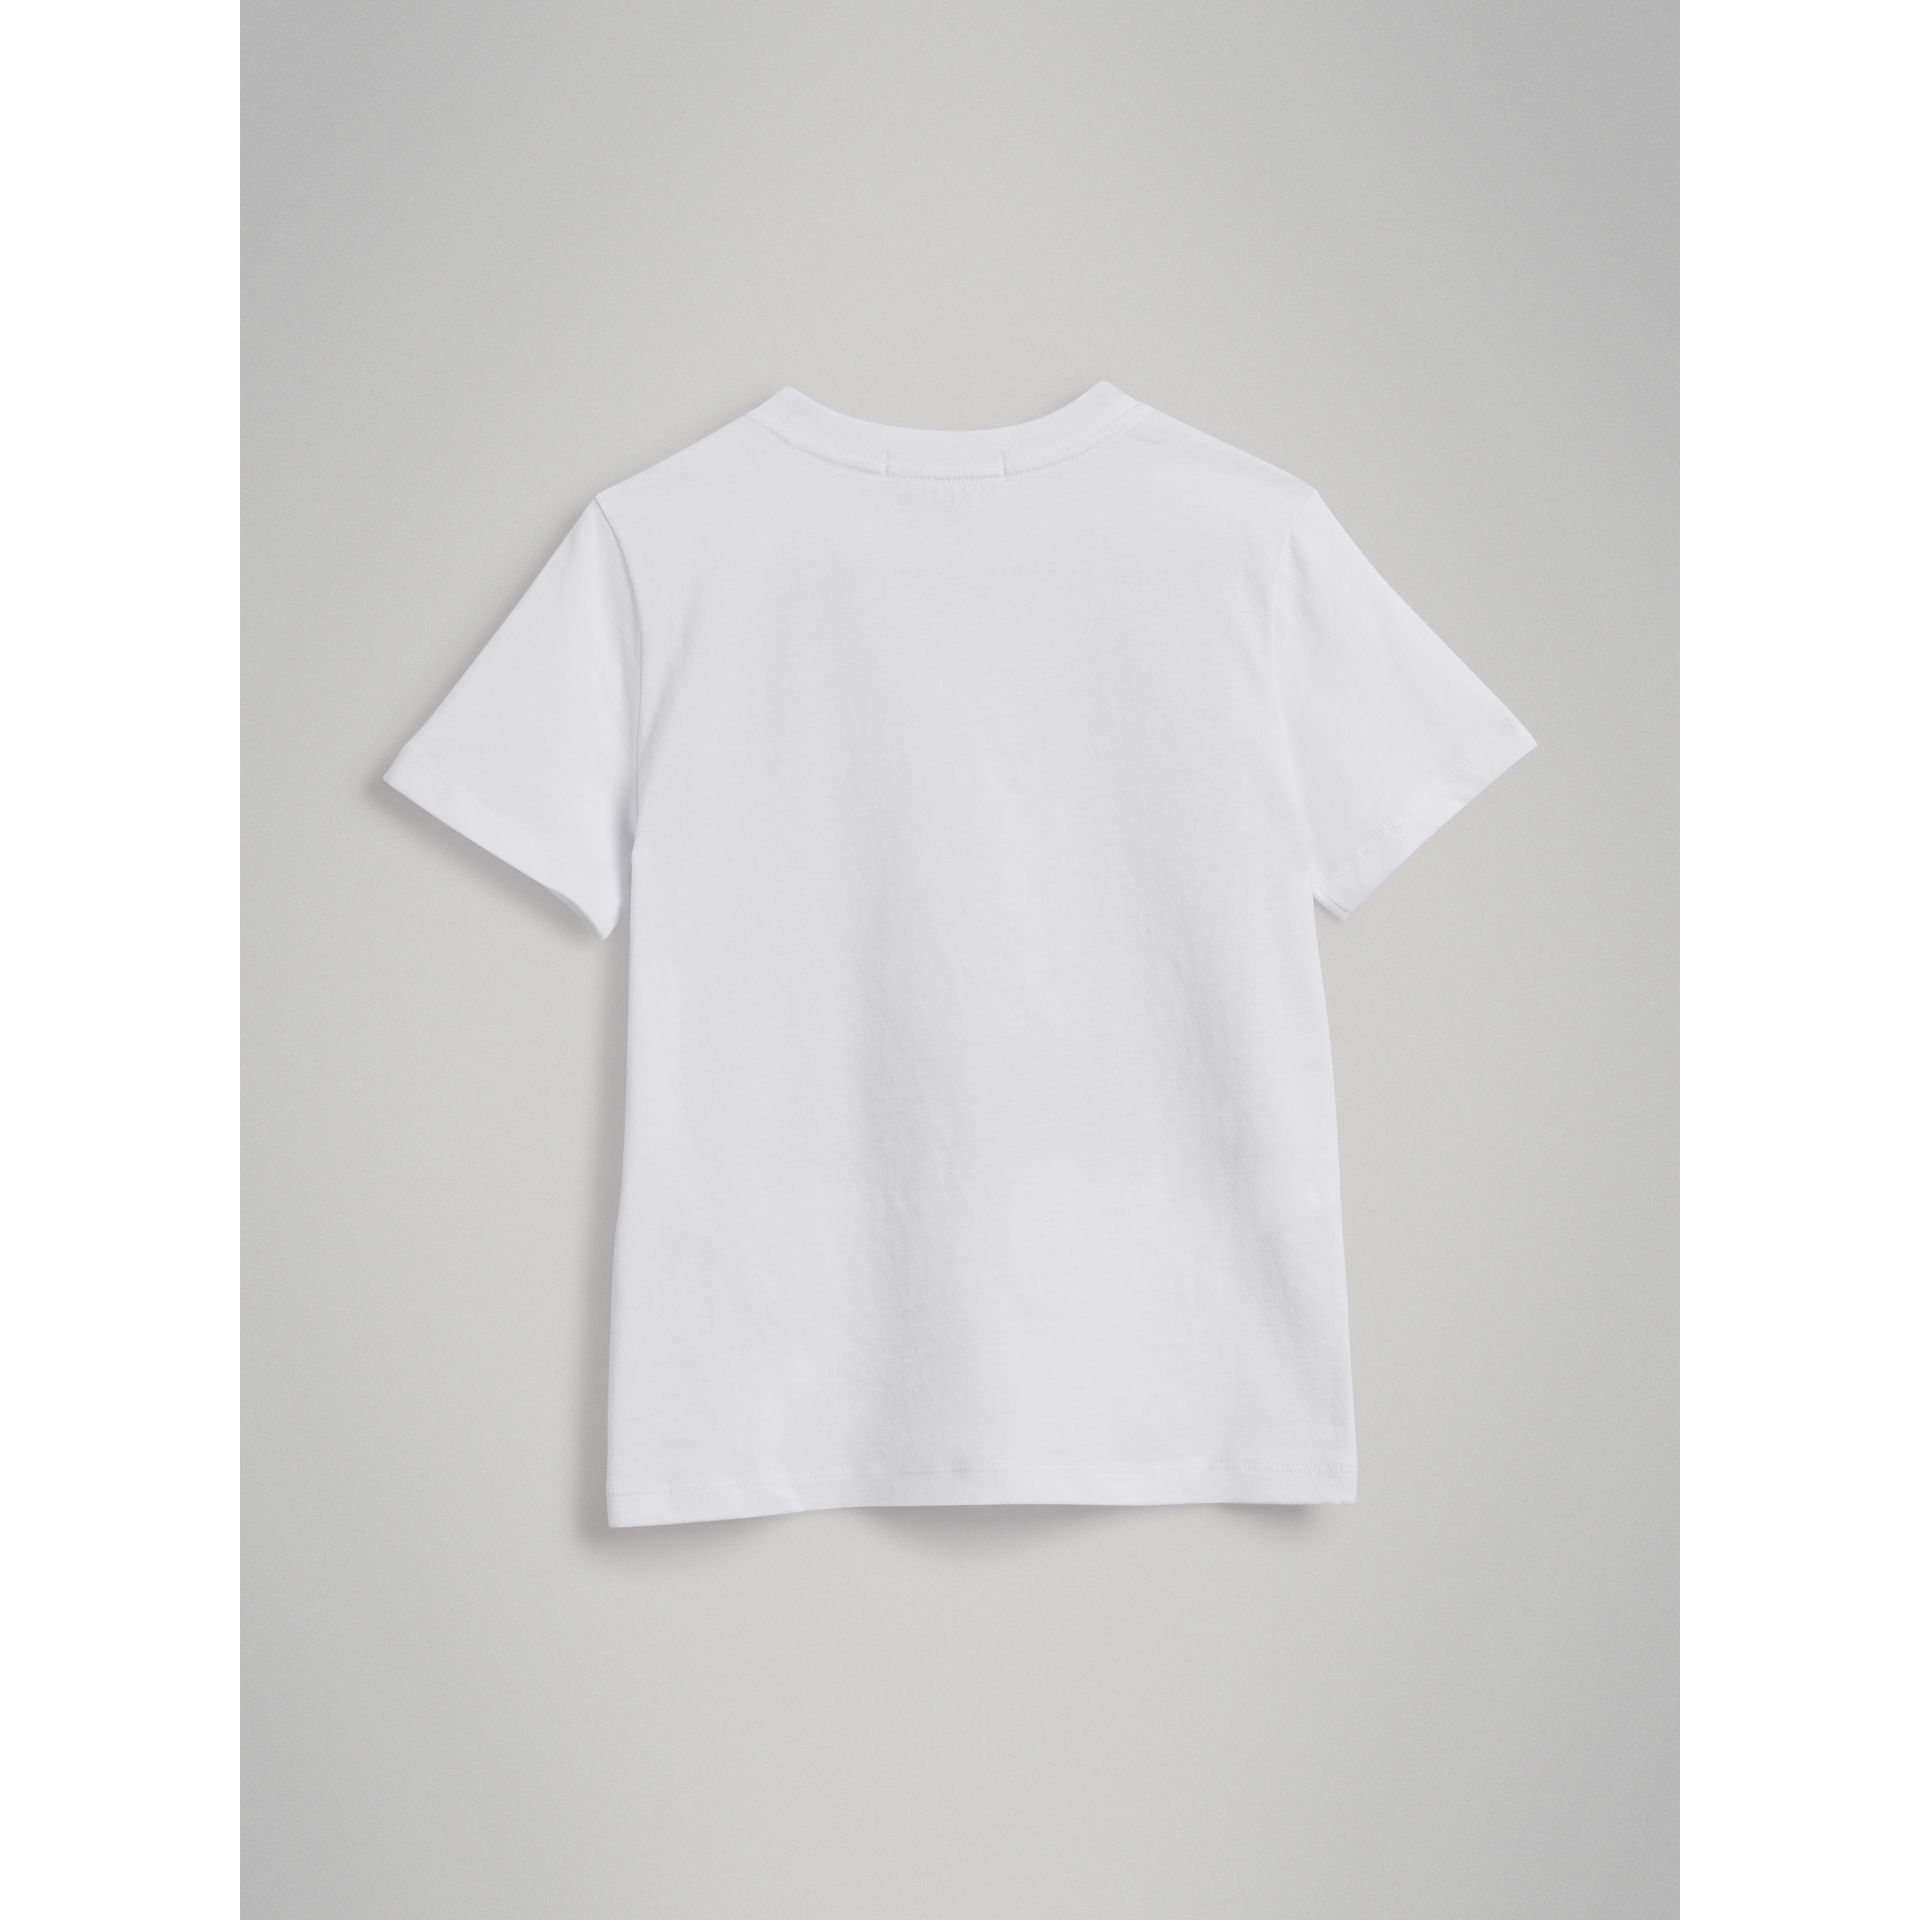 London Polaroid Print Cotton T-shirt in White | Burberry - gallery image 3